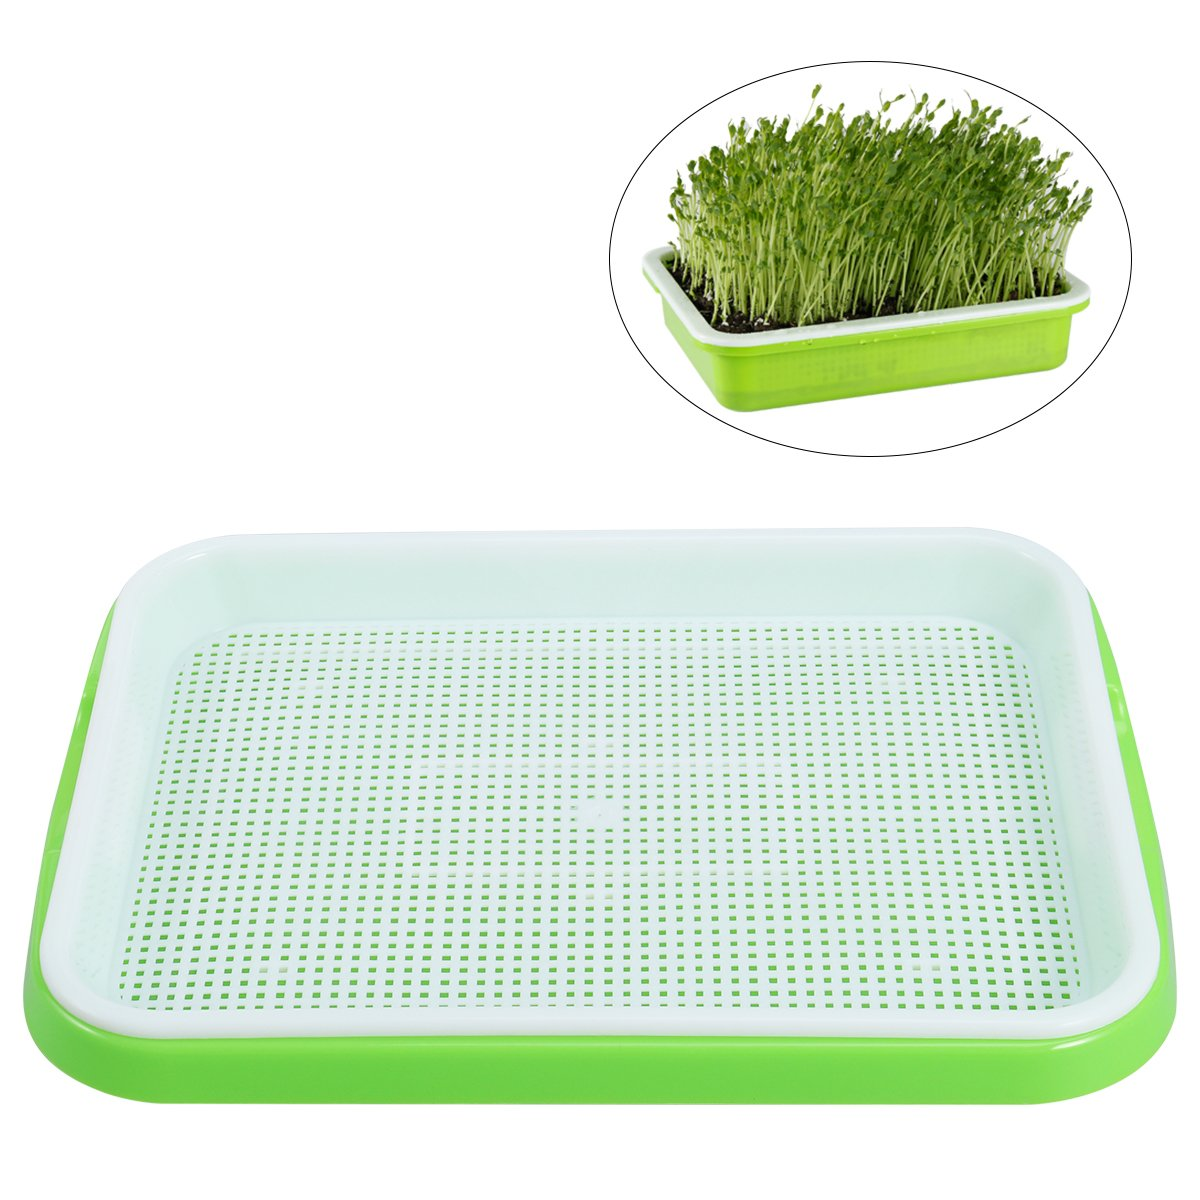 OUNONA Seed Sprouter Tray Soil-Free Food Grade PP Healthy Wheatgrass Grower